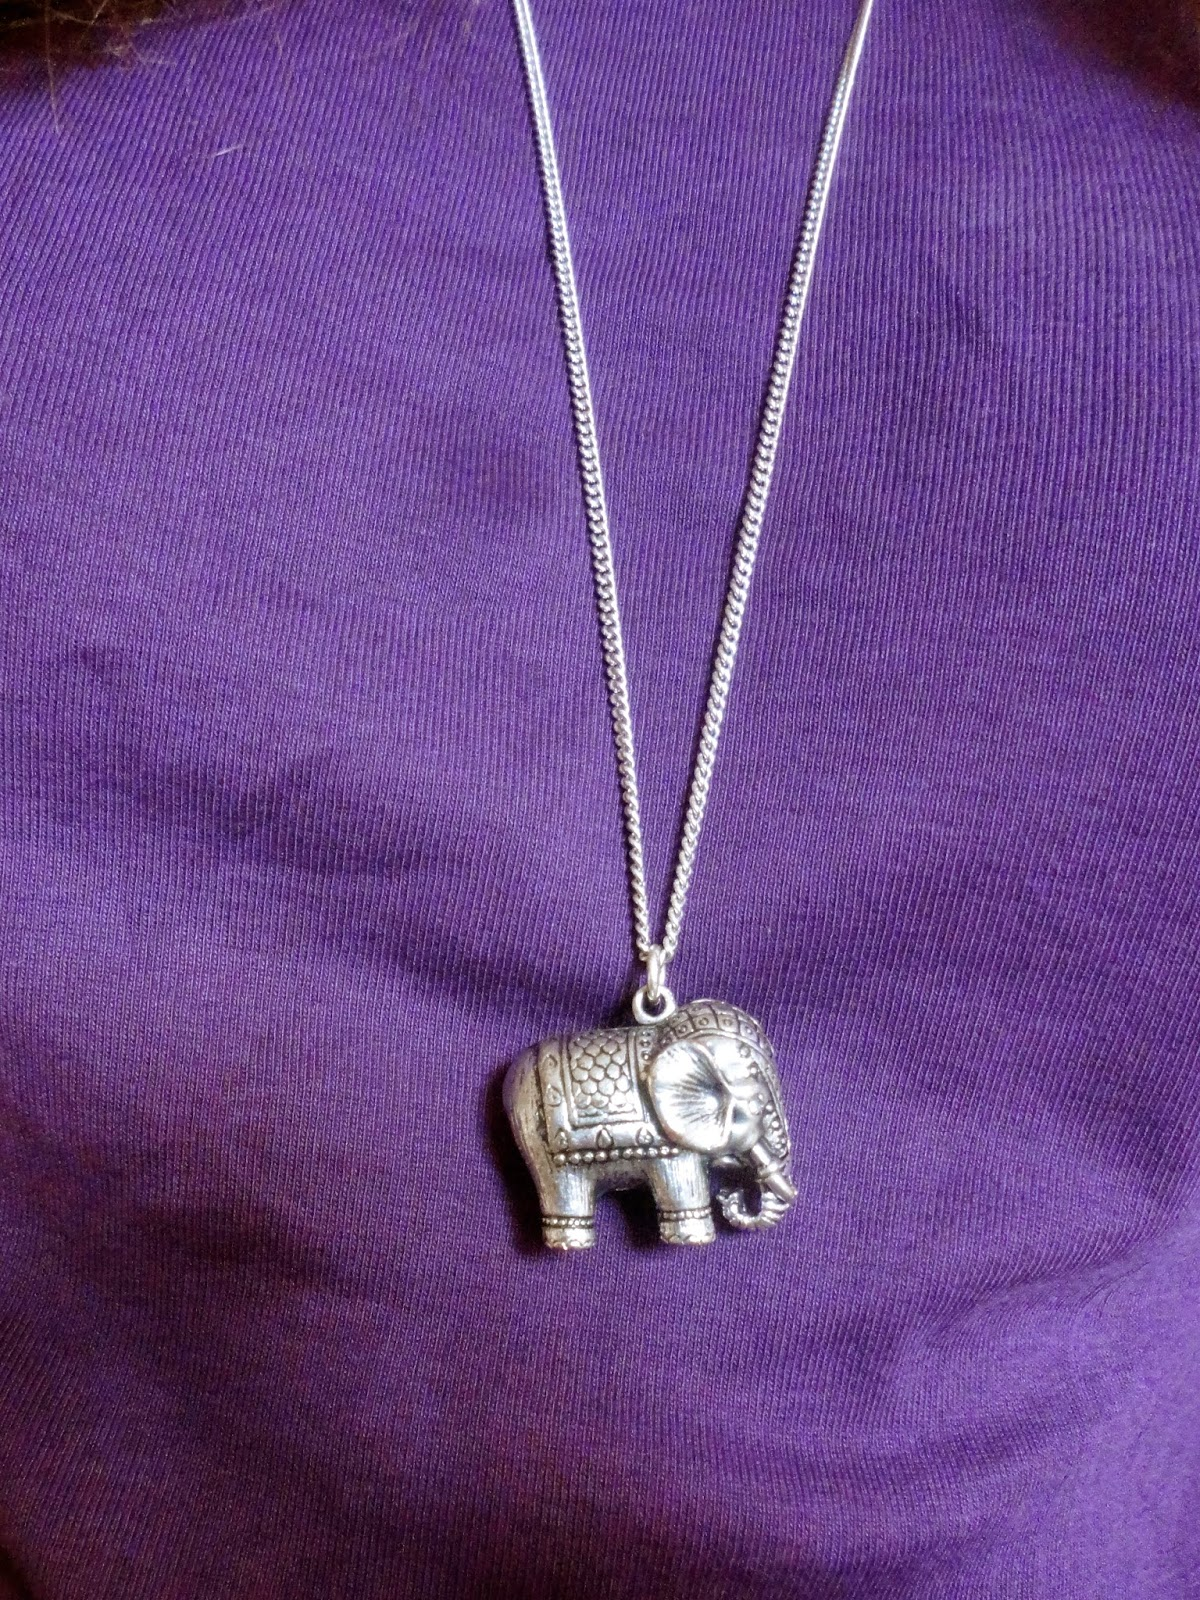 silver elephant pendant necklace on purple top